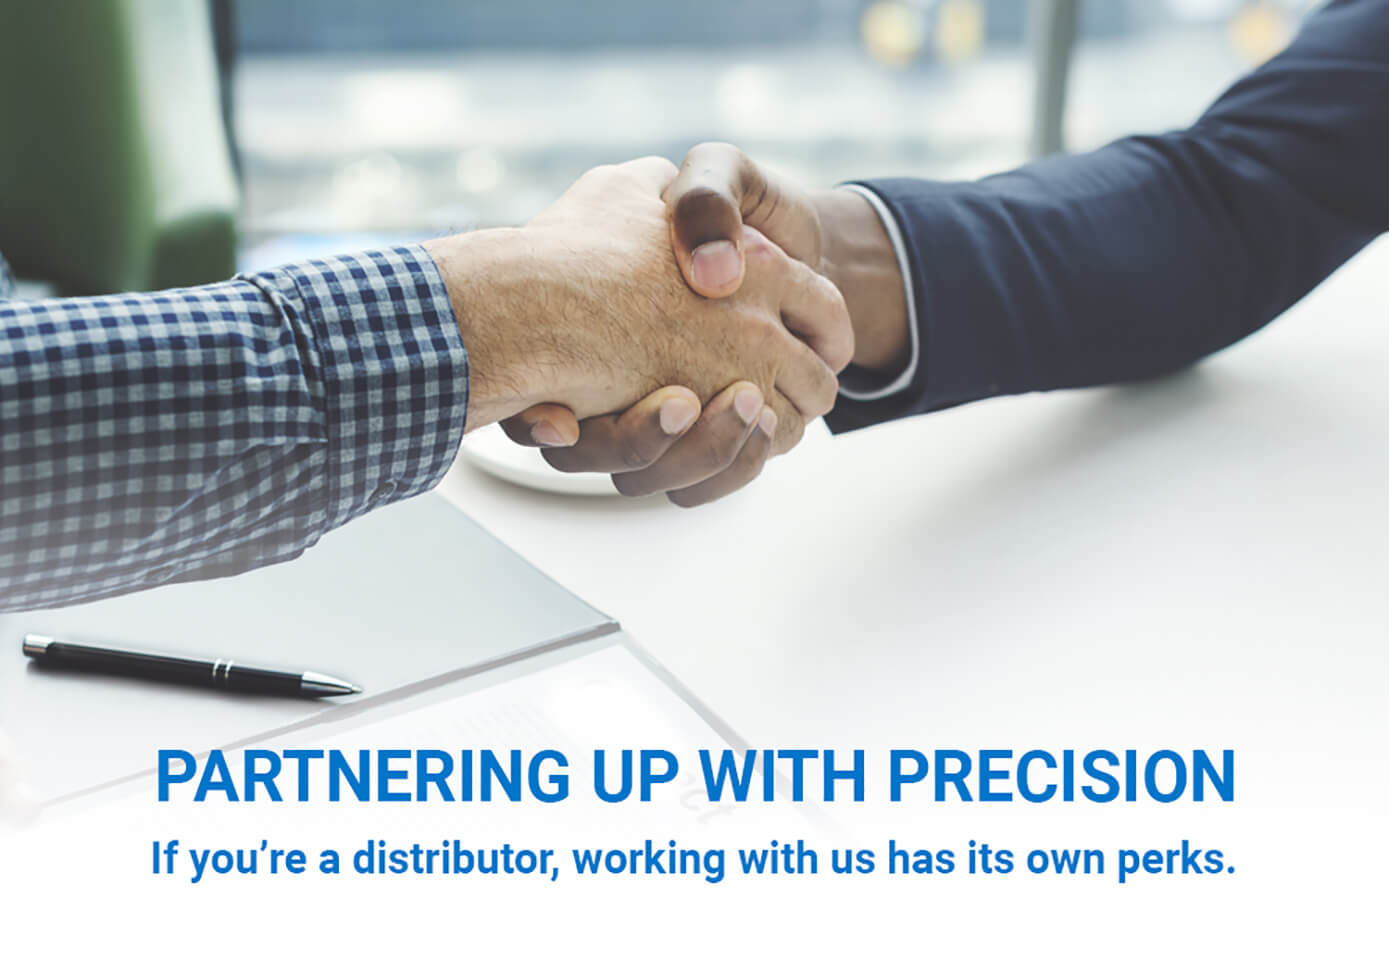 Why Should Distributors Partner up with Microlit?